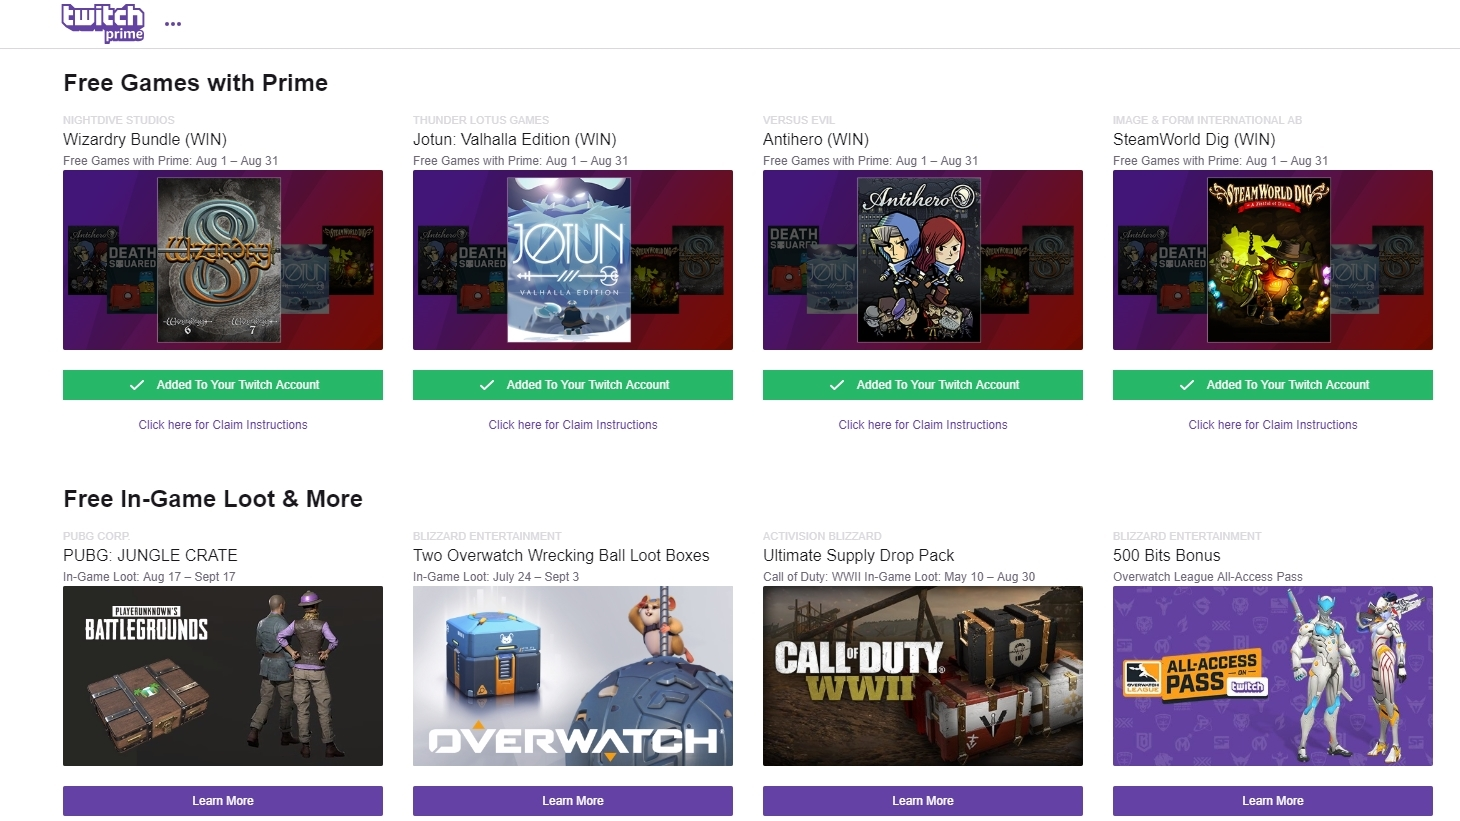 Ads are creeping back into Twitch Prime streams starting this September 14th